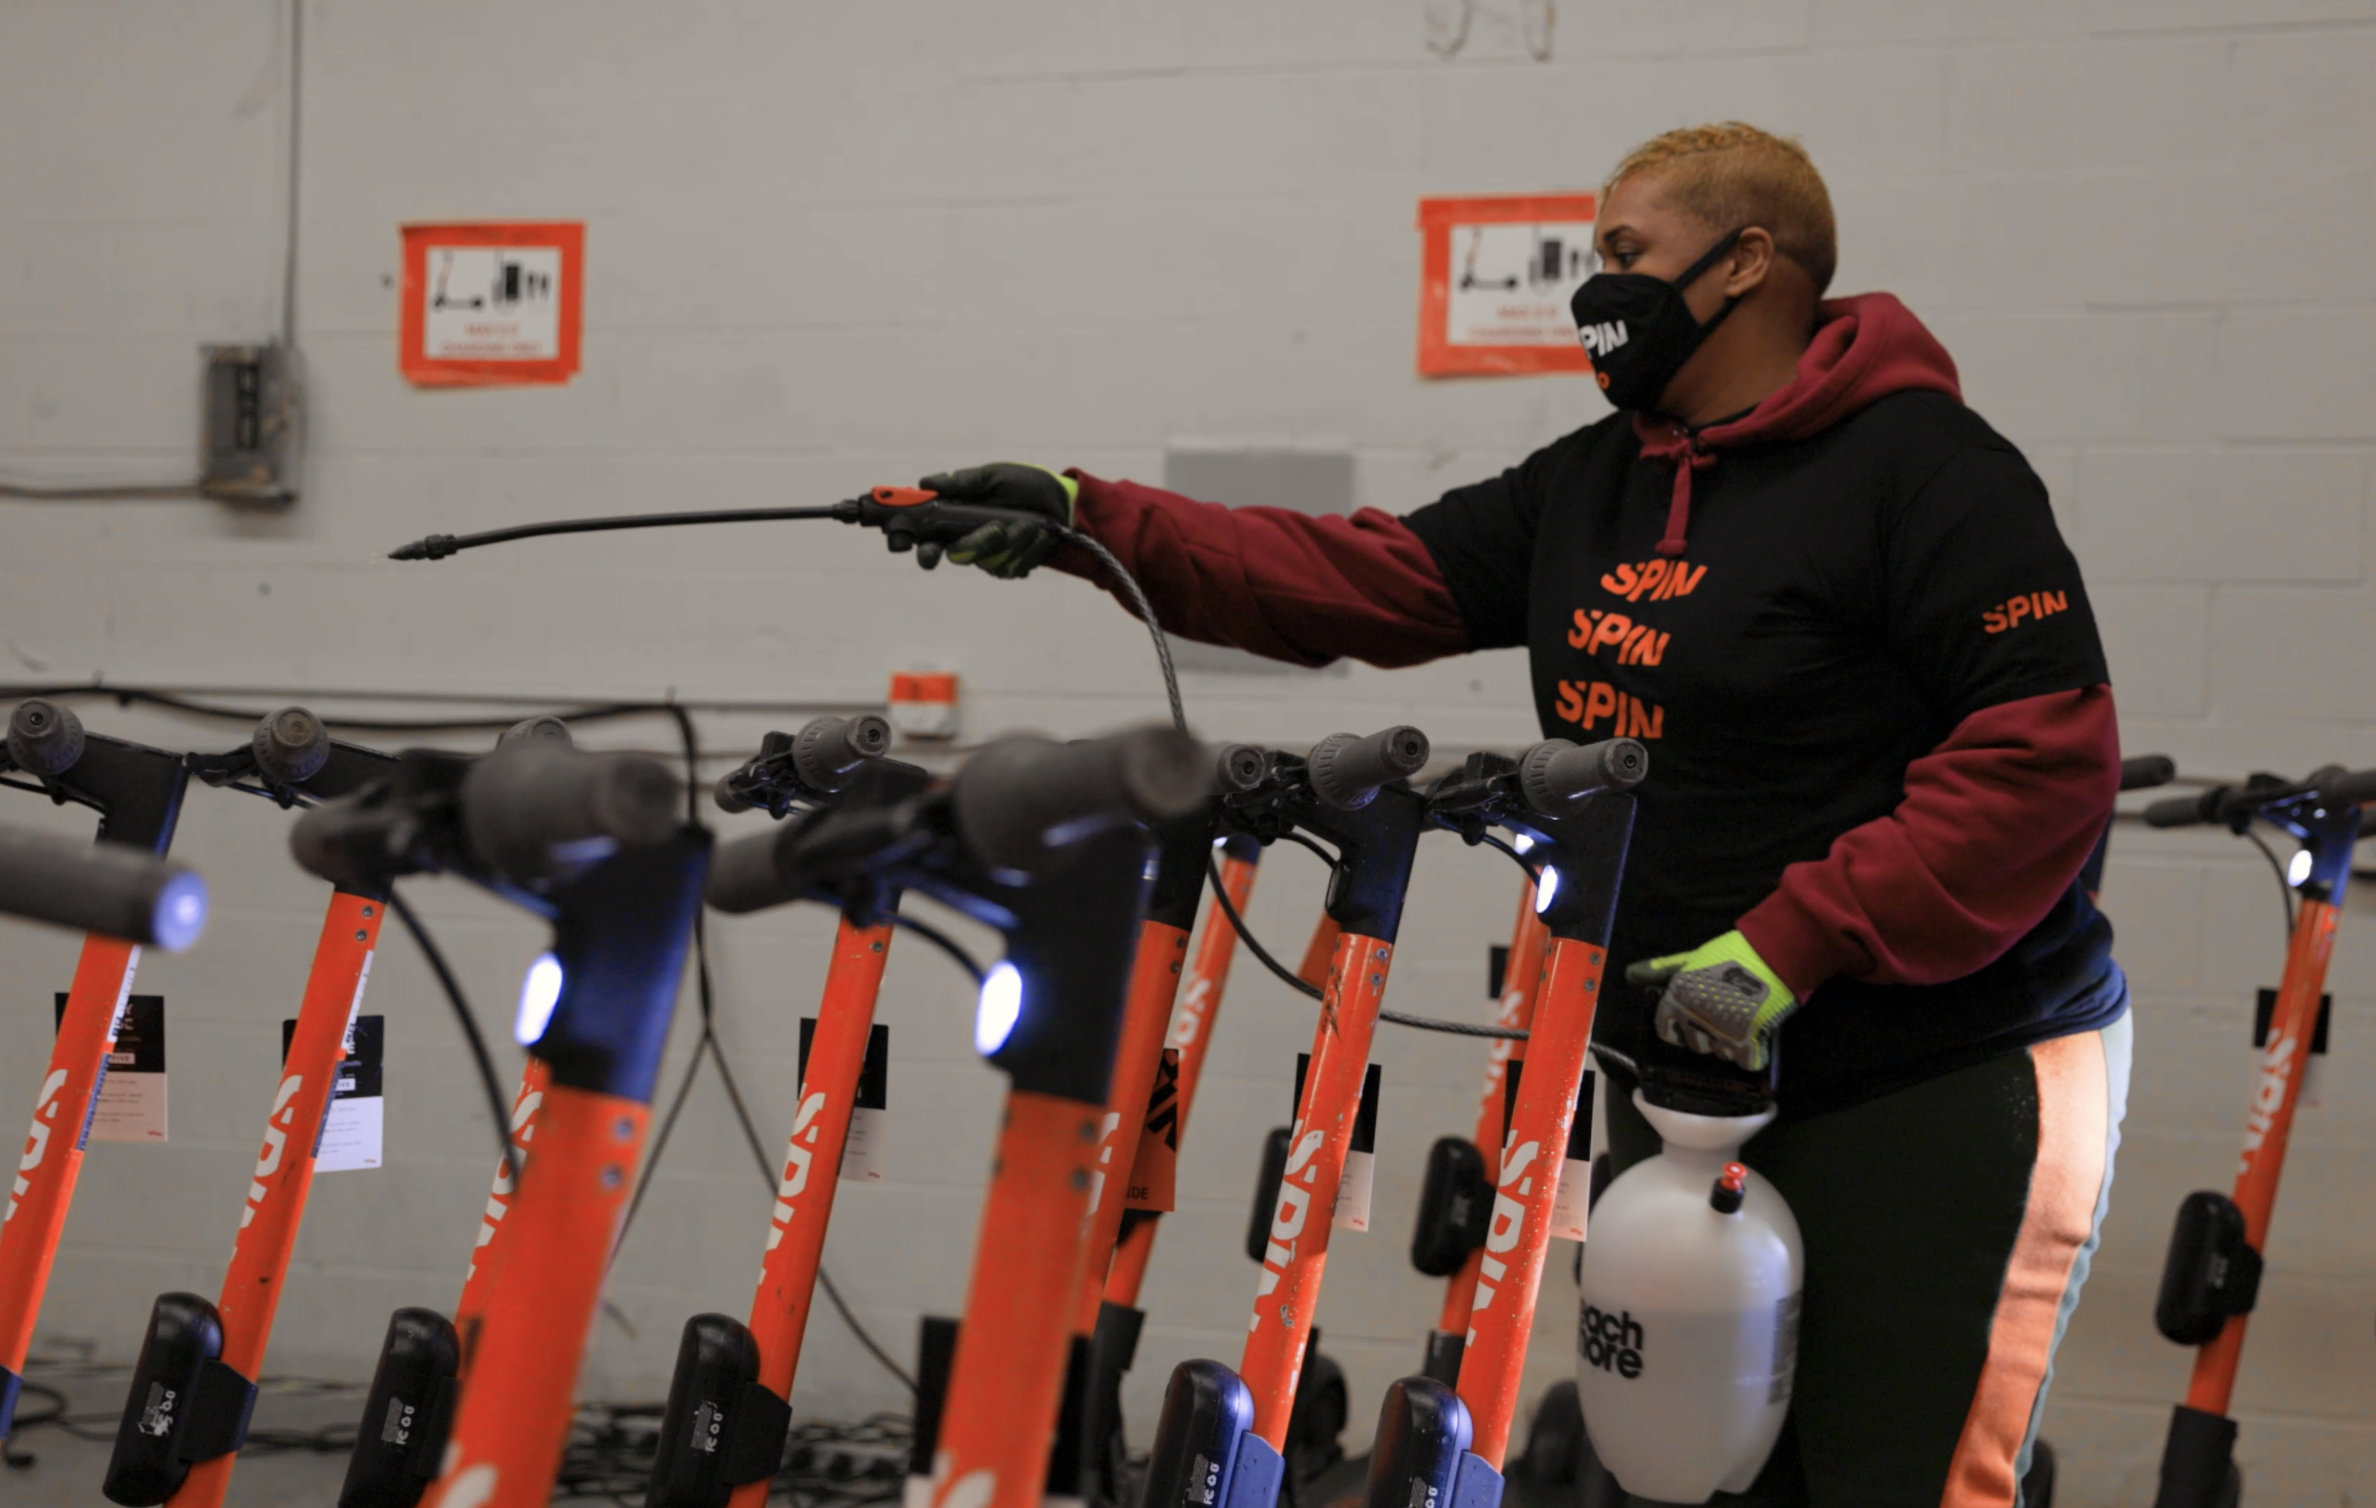 Rubie, wearing a mask, sprays Spin scooters in the warehouse with disinfectant.